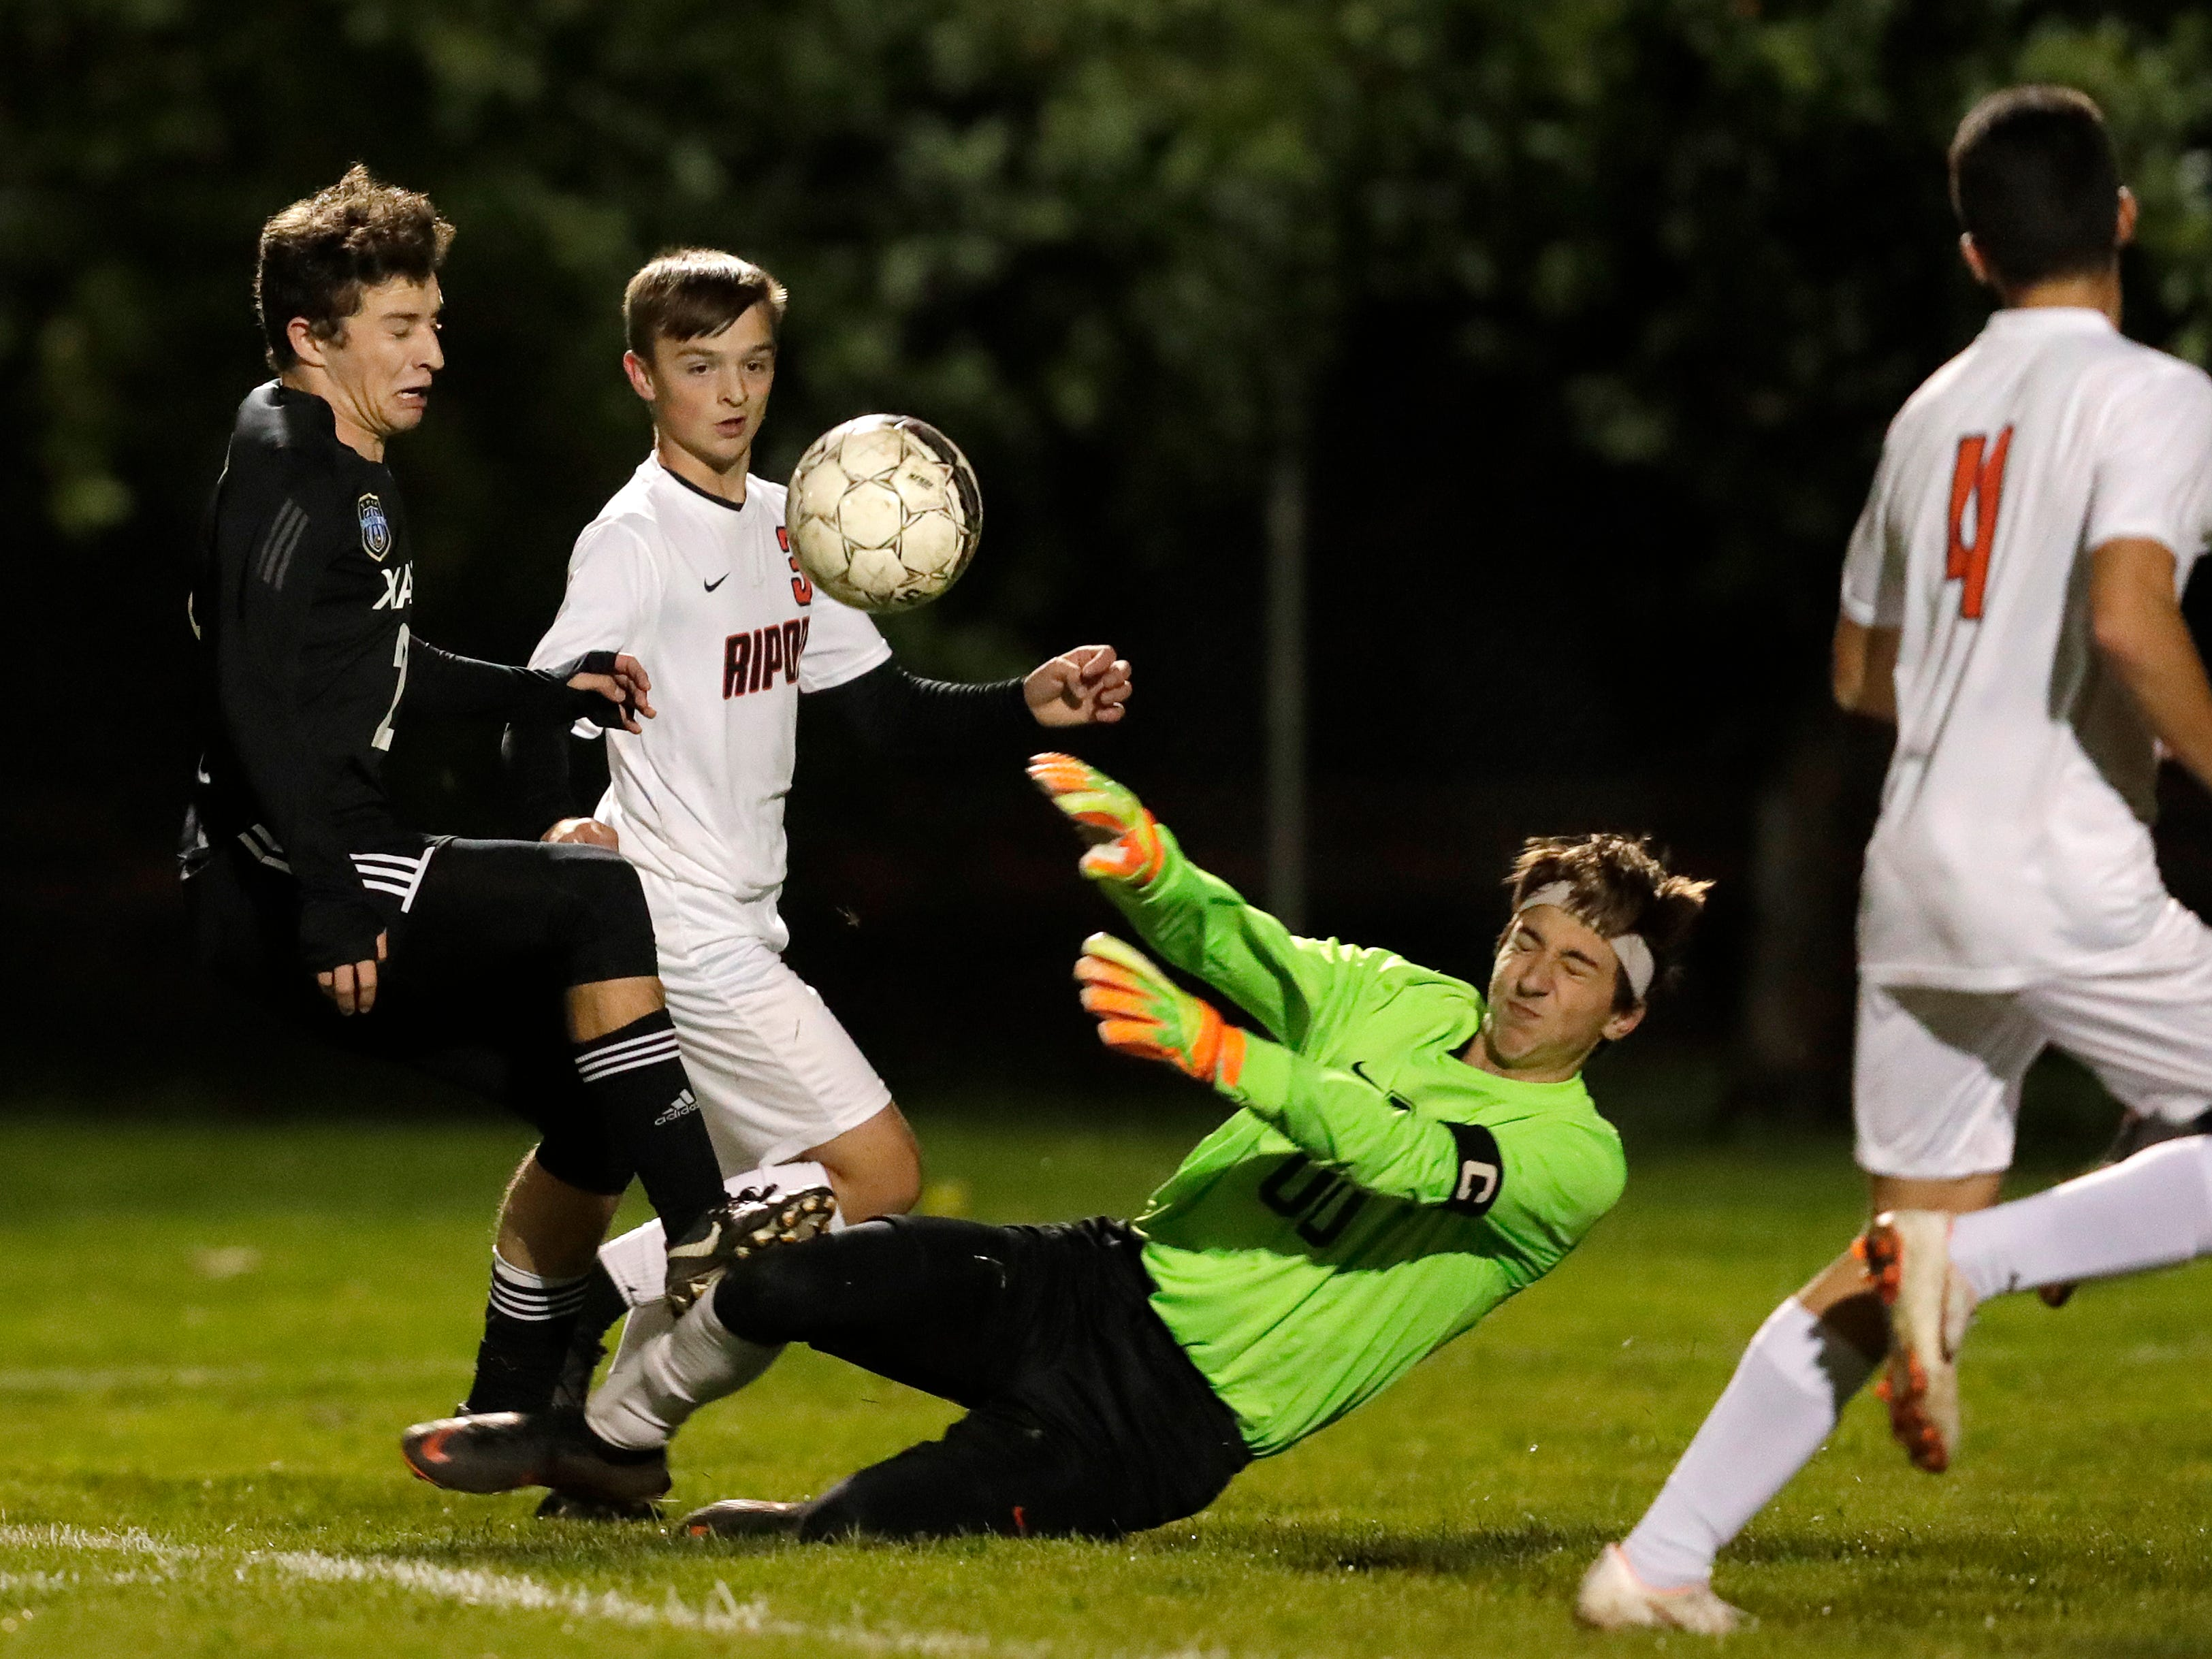 Xavier High School's William Mleziva (2) collides with Ripon High School's goalie Nick Bruesewitz (00) during their WIAA Division 3 boys soccer regional game Thursday, Oct. 18, 2018, in Appleton, Wis. 